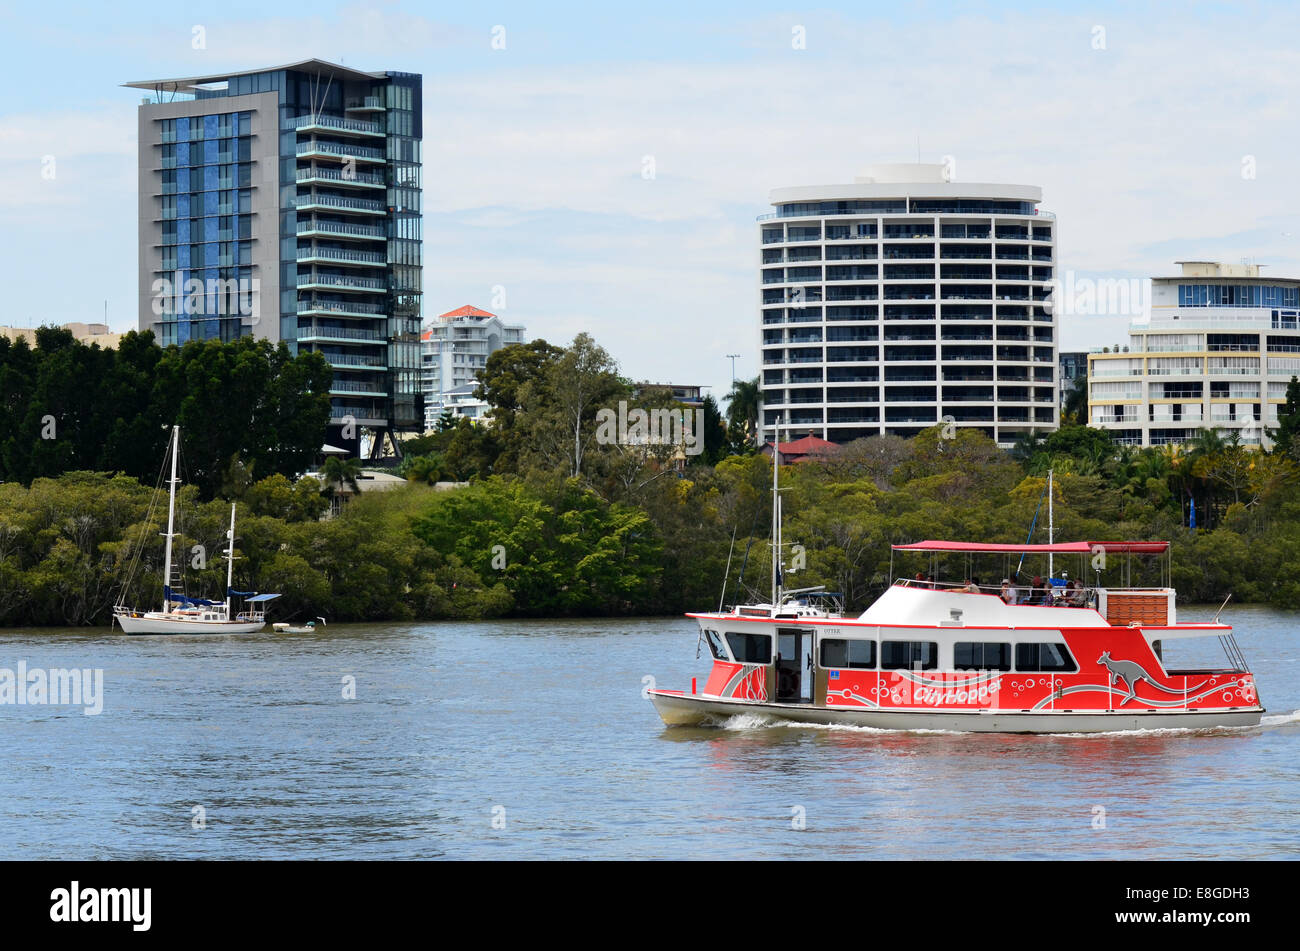 BRISBANE, AUS - SEP 24 2014:CityHopper ferry service in Brisbane, Australia.CityHopper service allows discover Brisbane - Stock Image